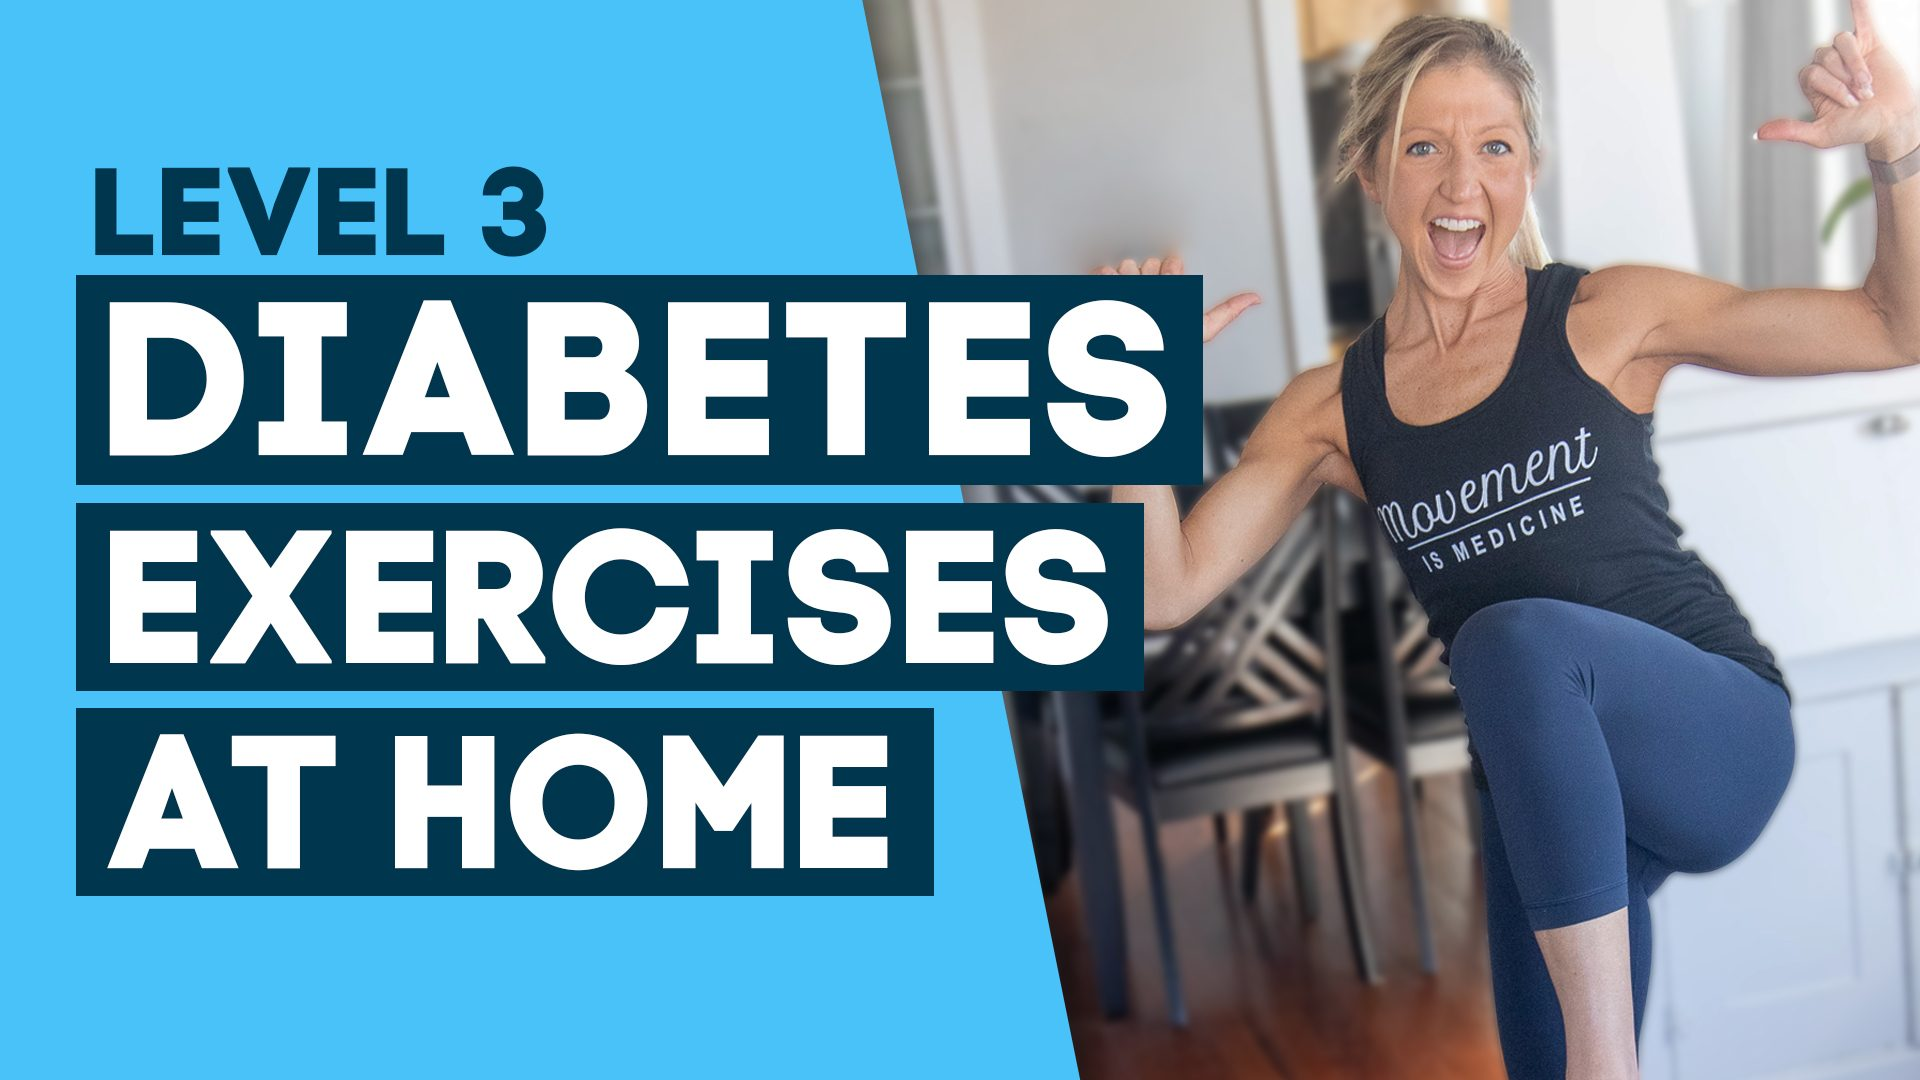 Diabetes Exercises At Home Level 3